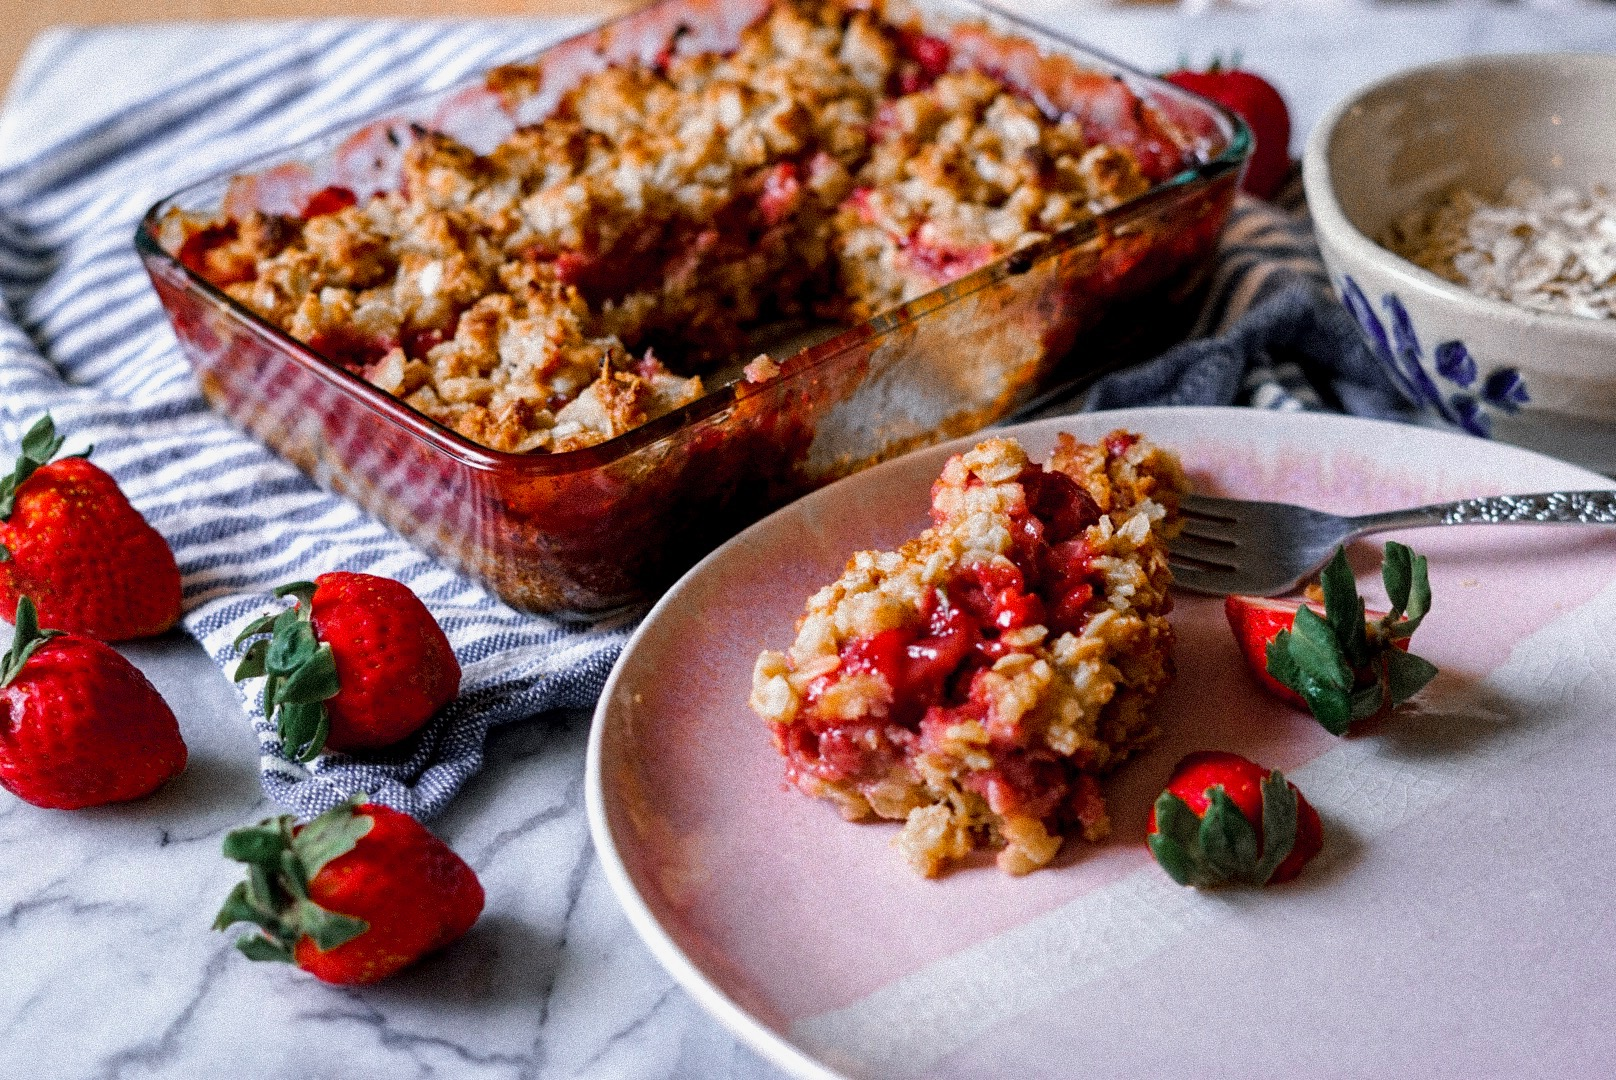 Strawberry Oat Crumble - Absolutely my top 3 favorite desserts i've ever made! Perfect for summer